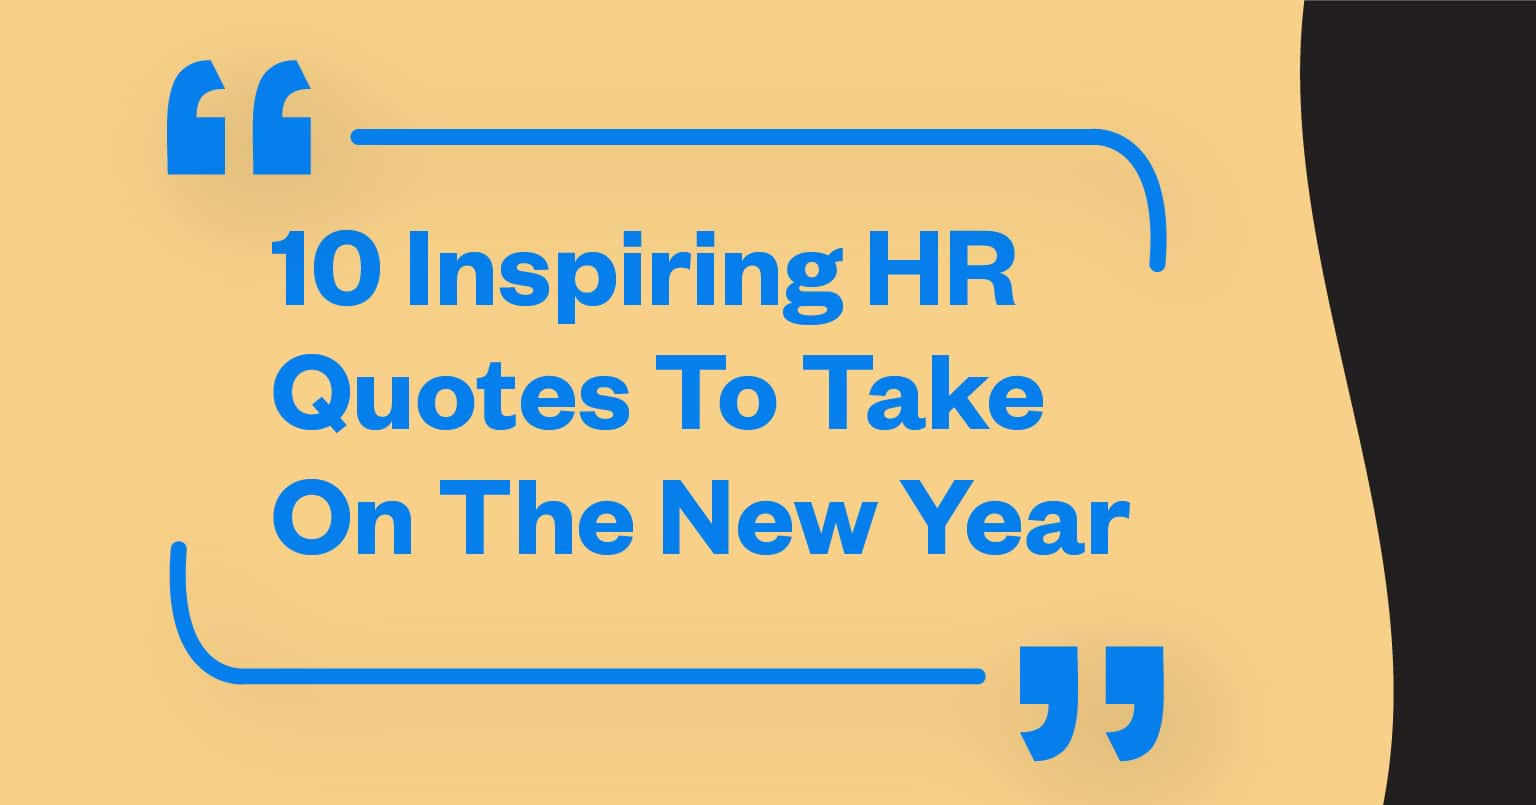 10 Inspiring HR Quotes To Take On The New Year